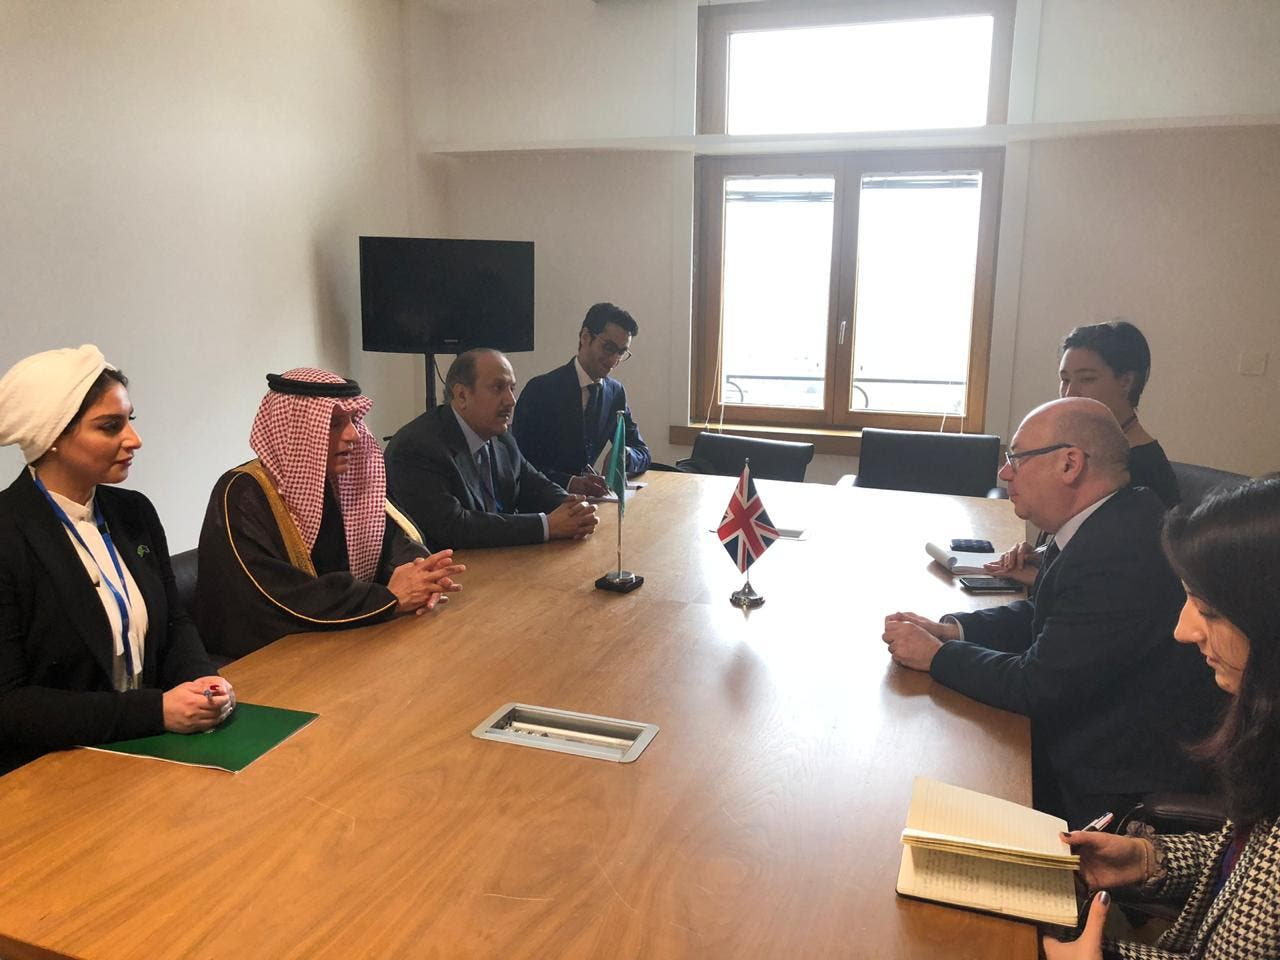 Saudi Minister of State for Foreign Affairs Adel al-Jubeir meets British Minister of State for the Middle East and North Africa Alistair Burt. (Supplied)